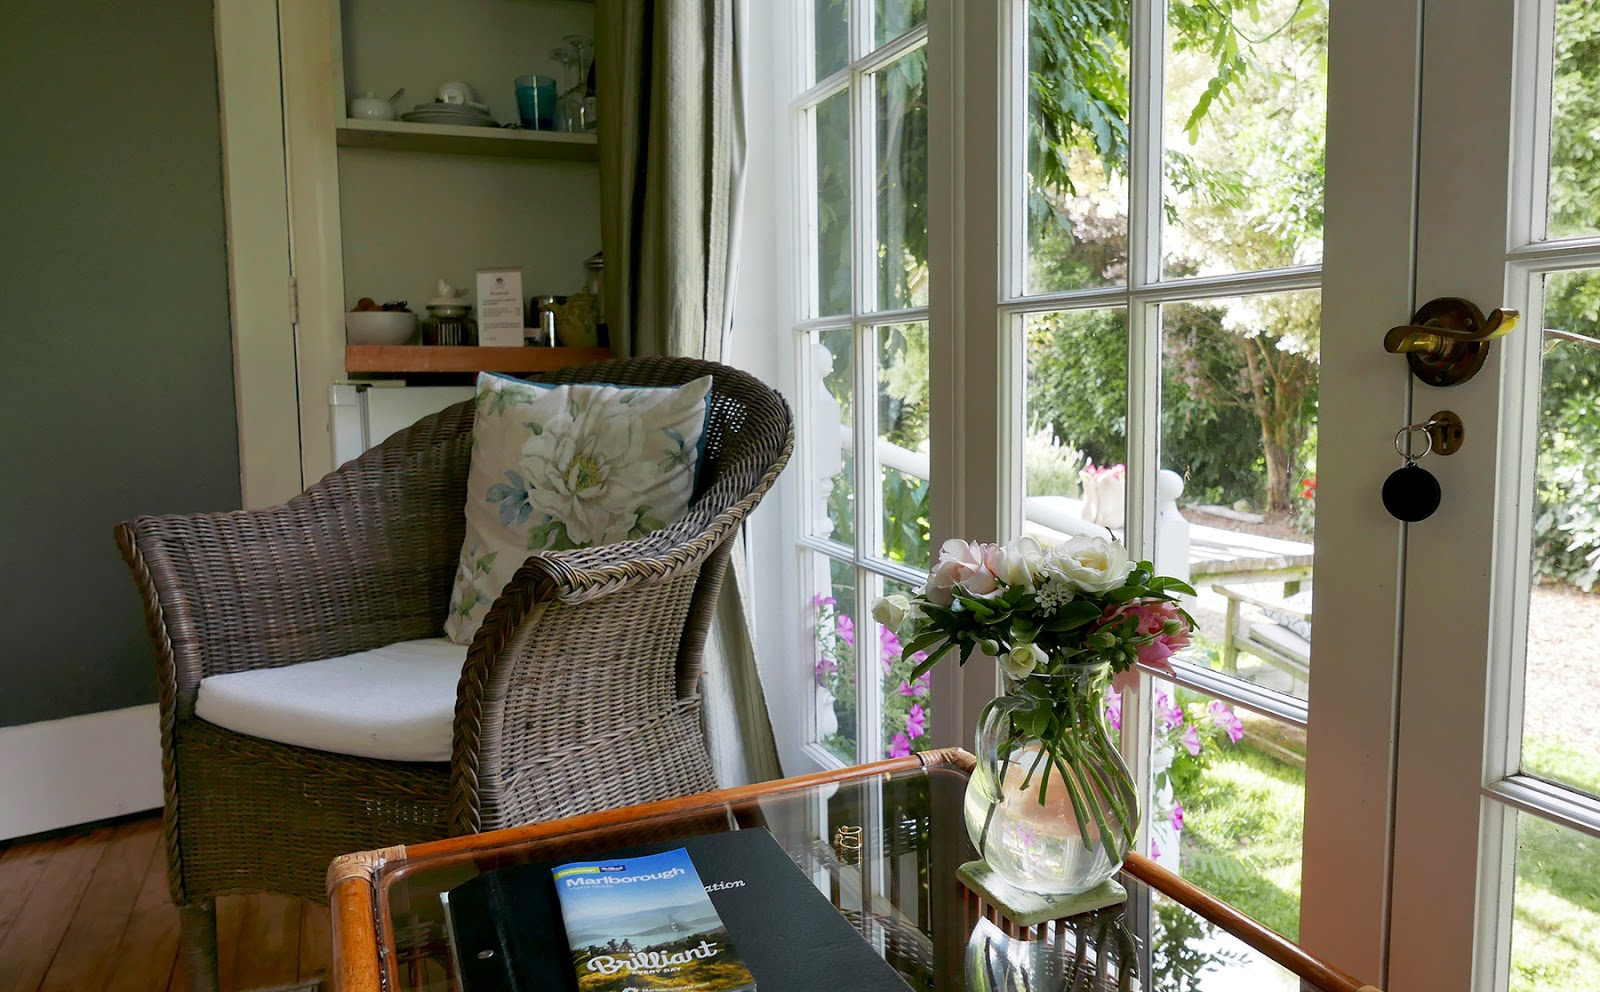 Euriental | luxury travel & style | Woodside, Marlborough B&B, New Zealand